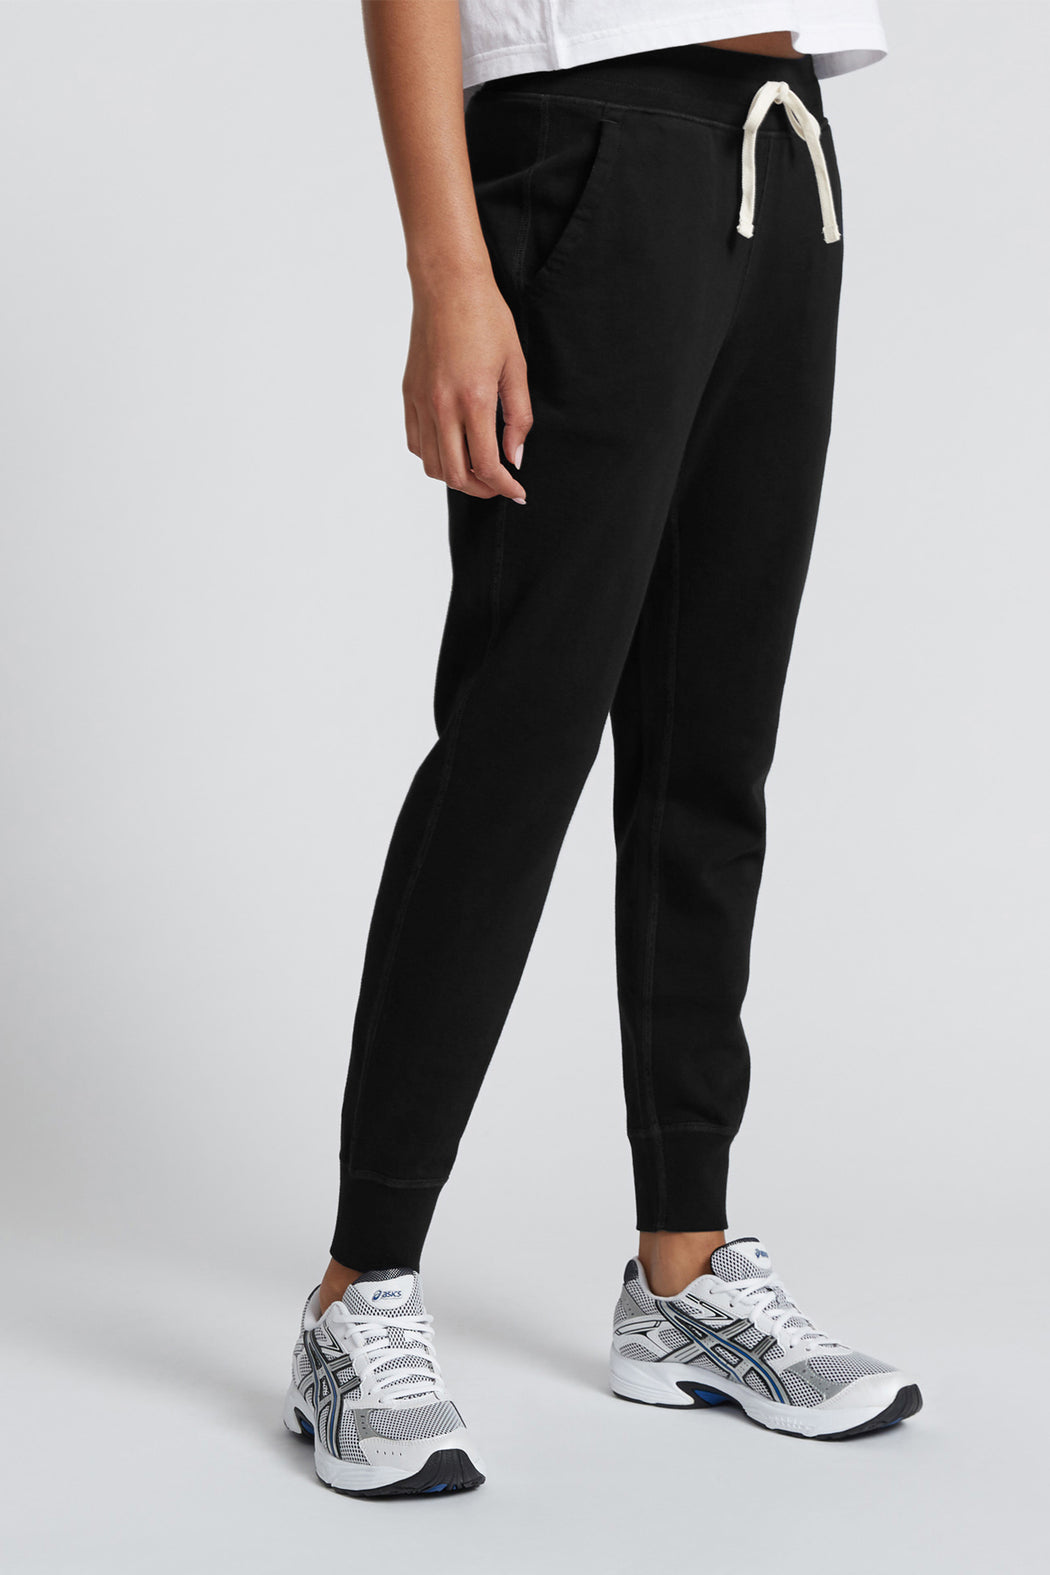 Reigning Champ Lightweight Slim Sweatpant in Black